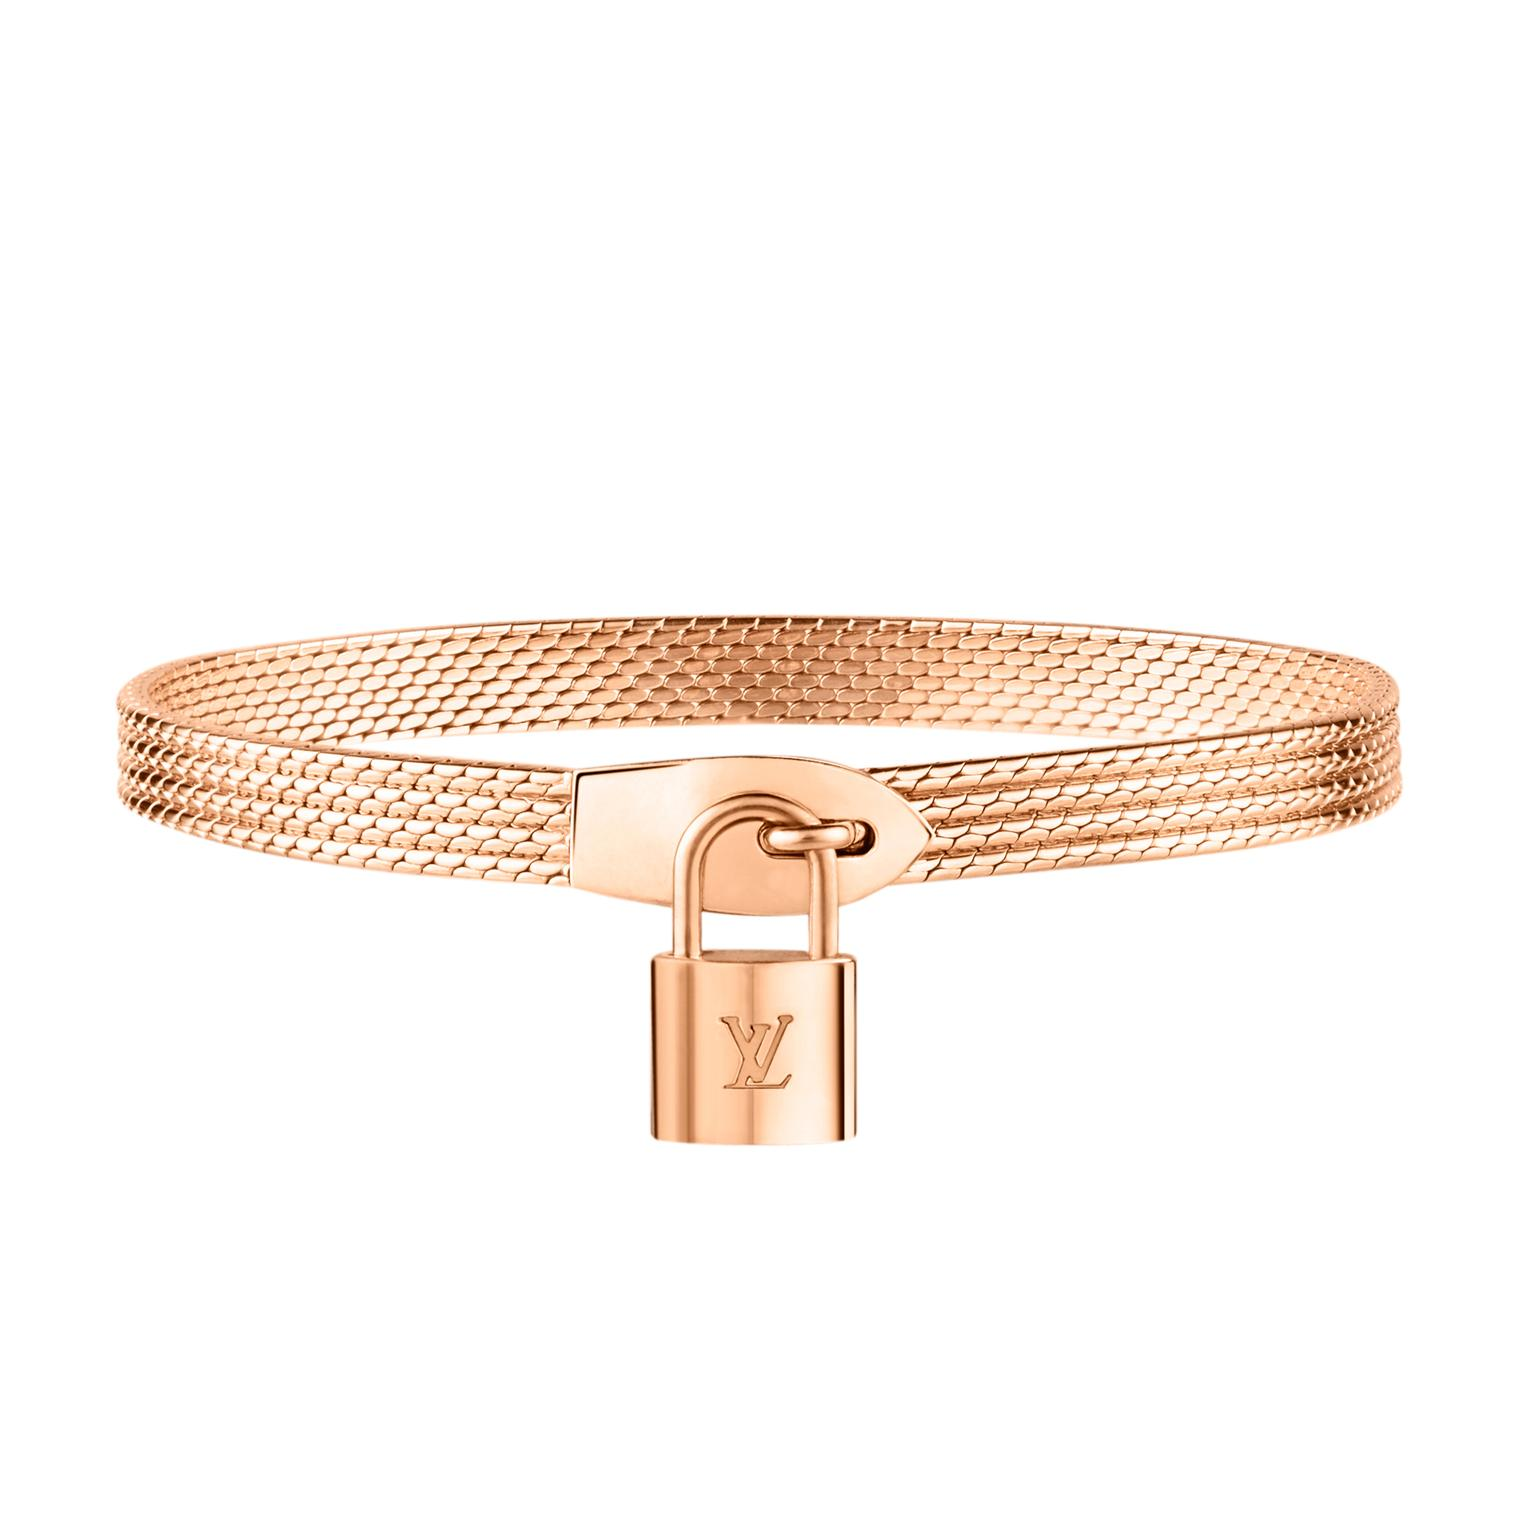 Louis Vuitton Lockit Bracelet rose gold